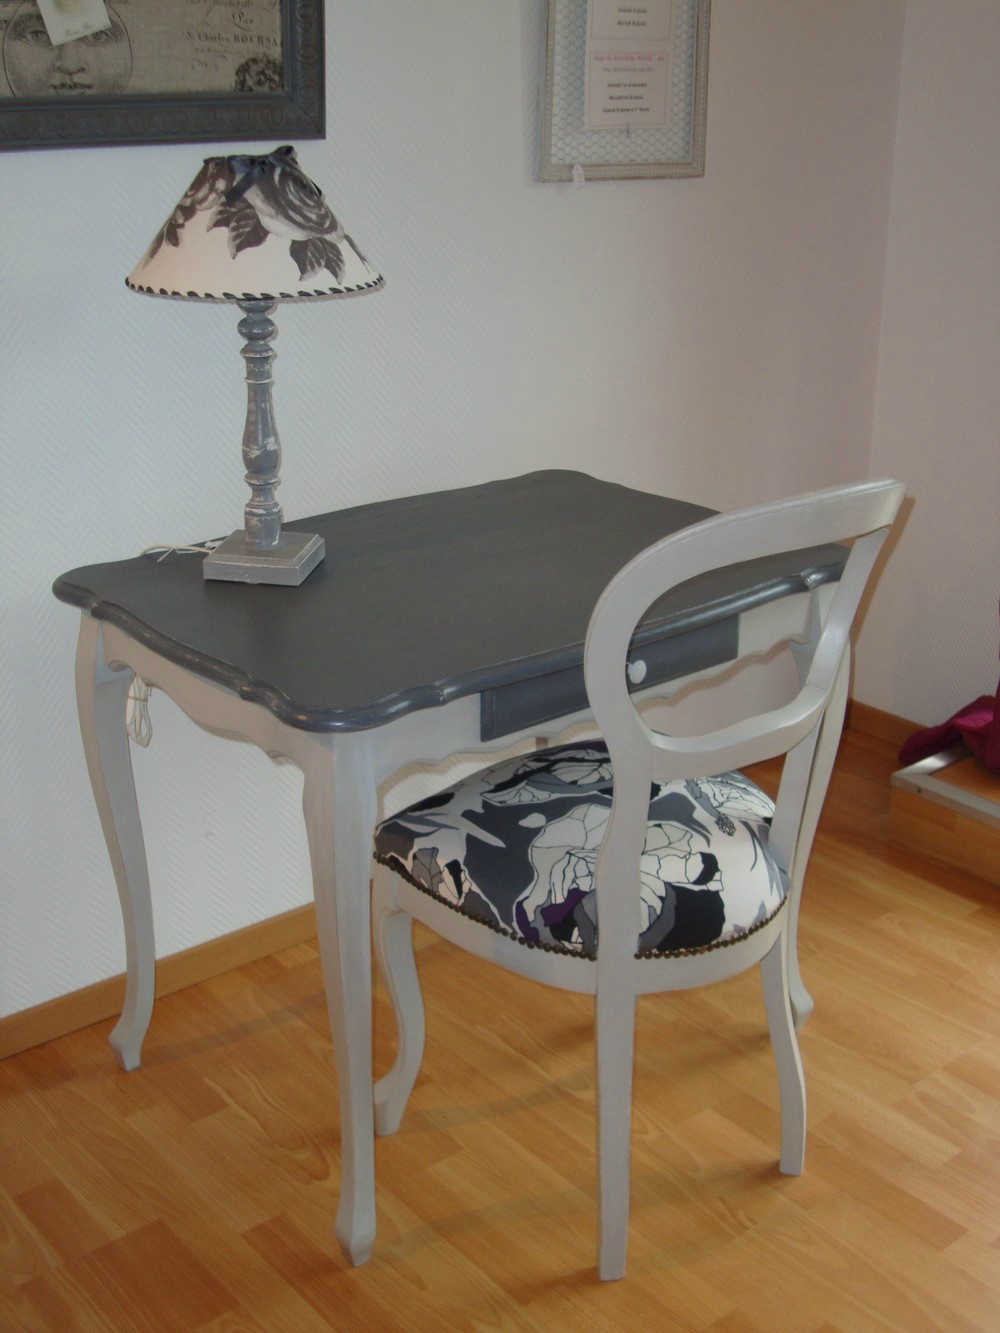 Coiffeuse Patine Ardoise Amp Sa Chaise Relooke Krative Dco